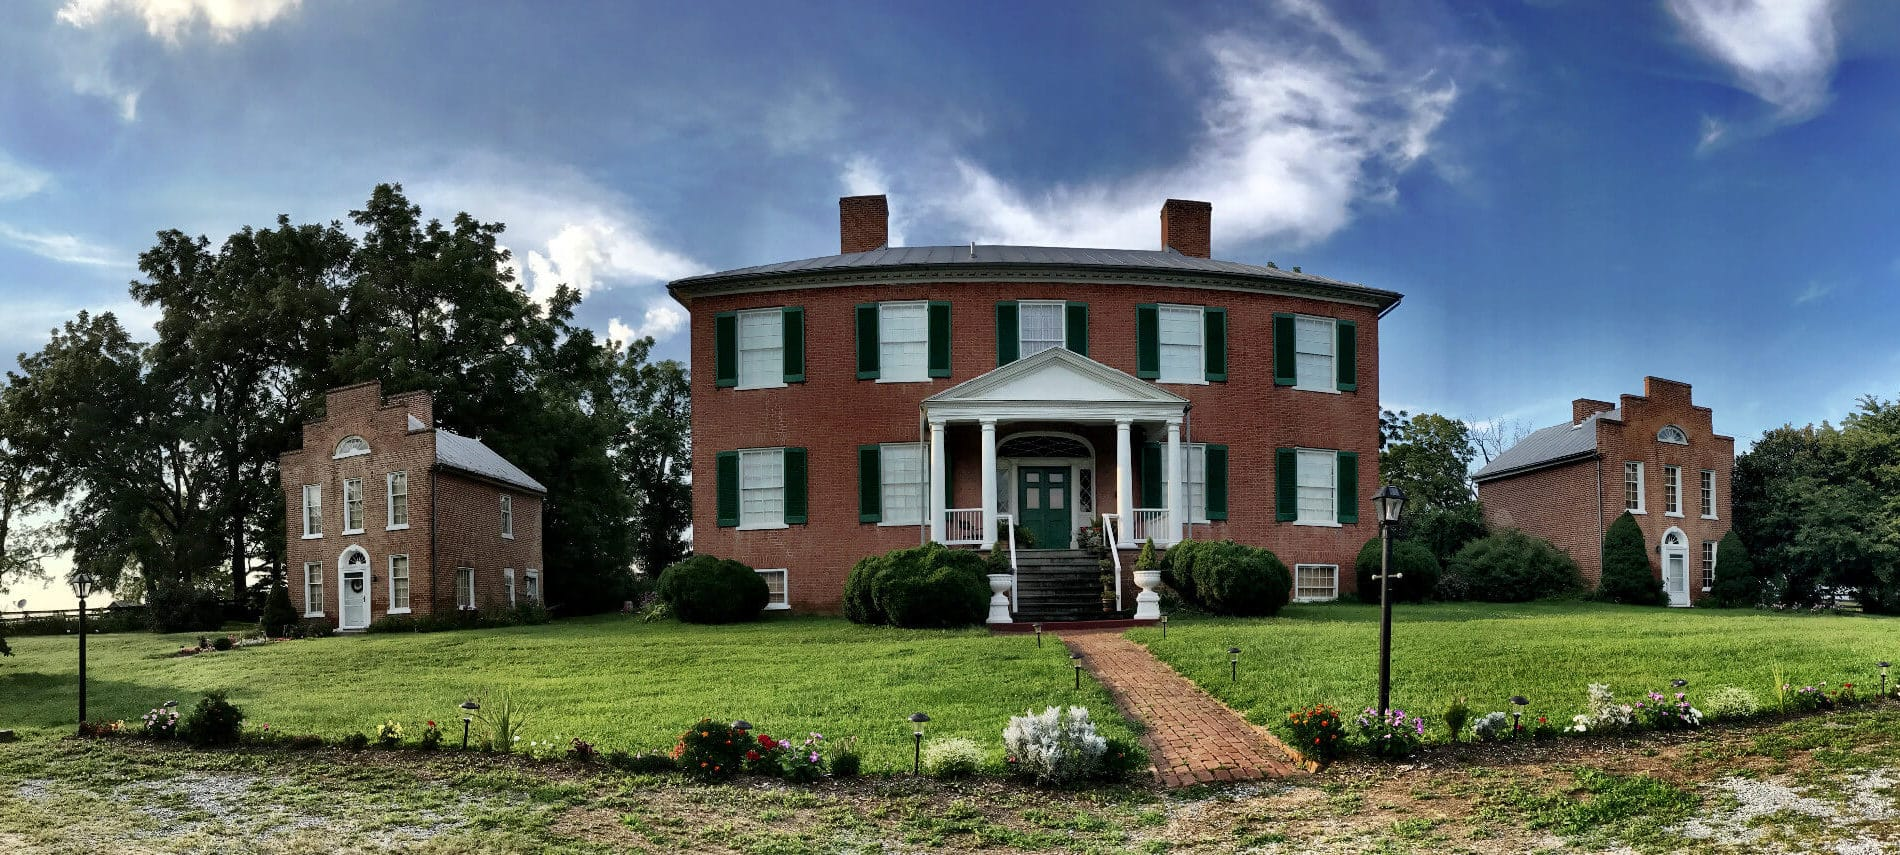 Large brick manor house with white columns and two firestacks